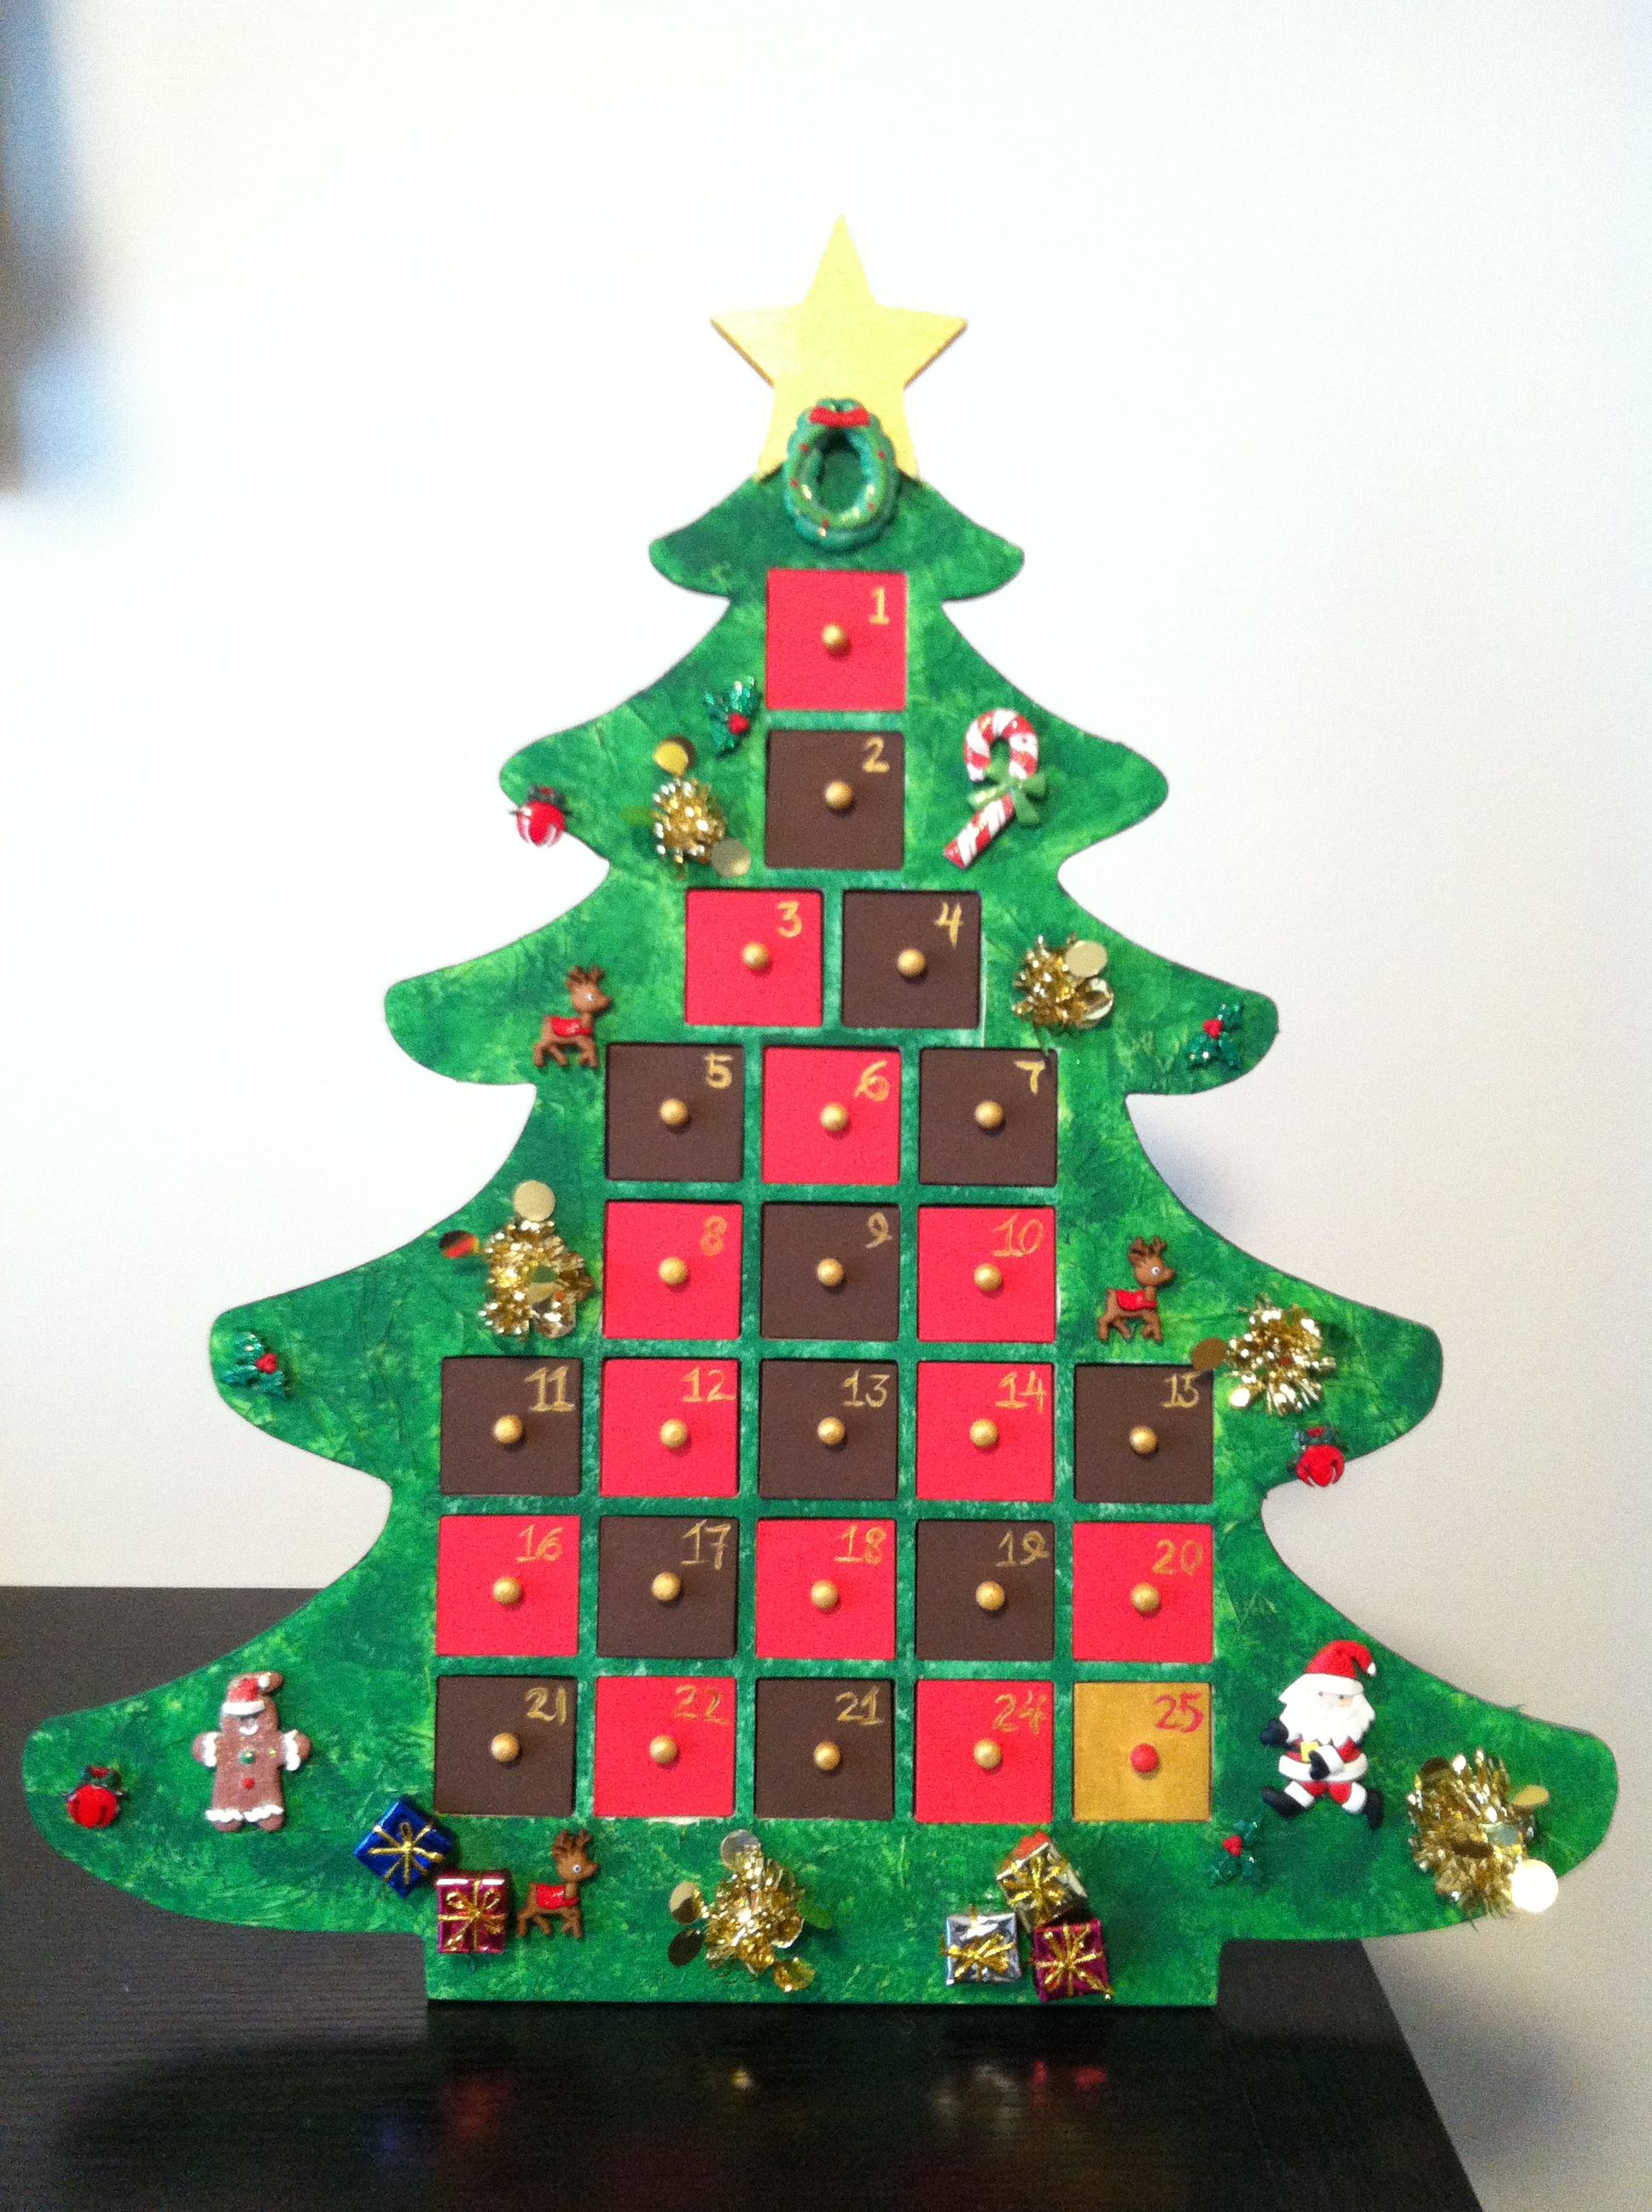 Do It Yourself Advent Calendar Unfinished Wooden Tree From Michaels Craft Store Decor Christmas Tree Advent Calendar Michaels Crafts Store Christmas Crafts